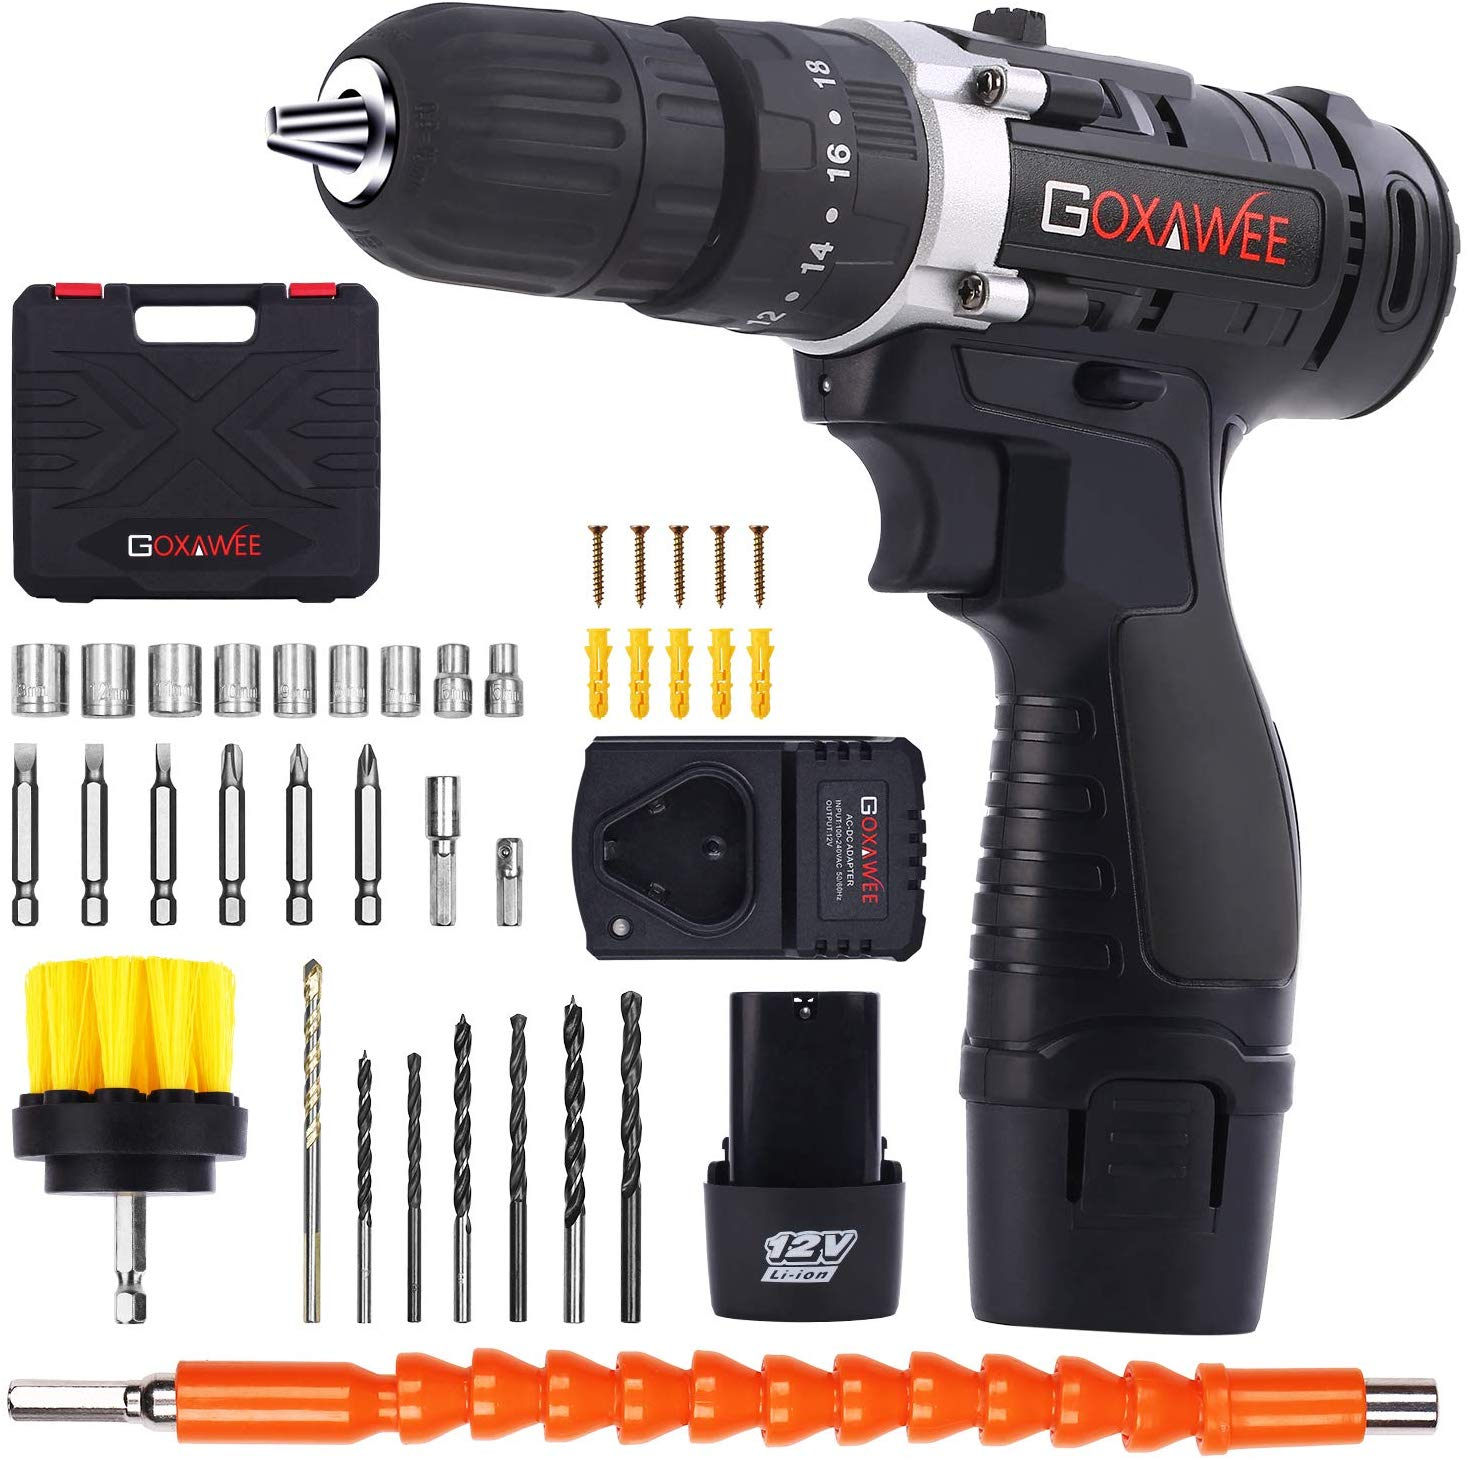 Goxawee cordless drill